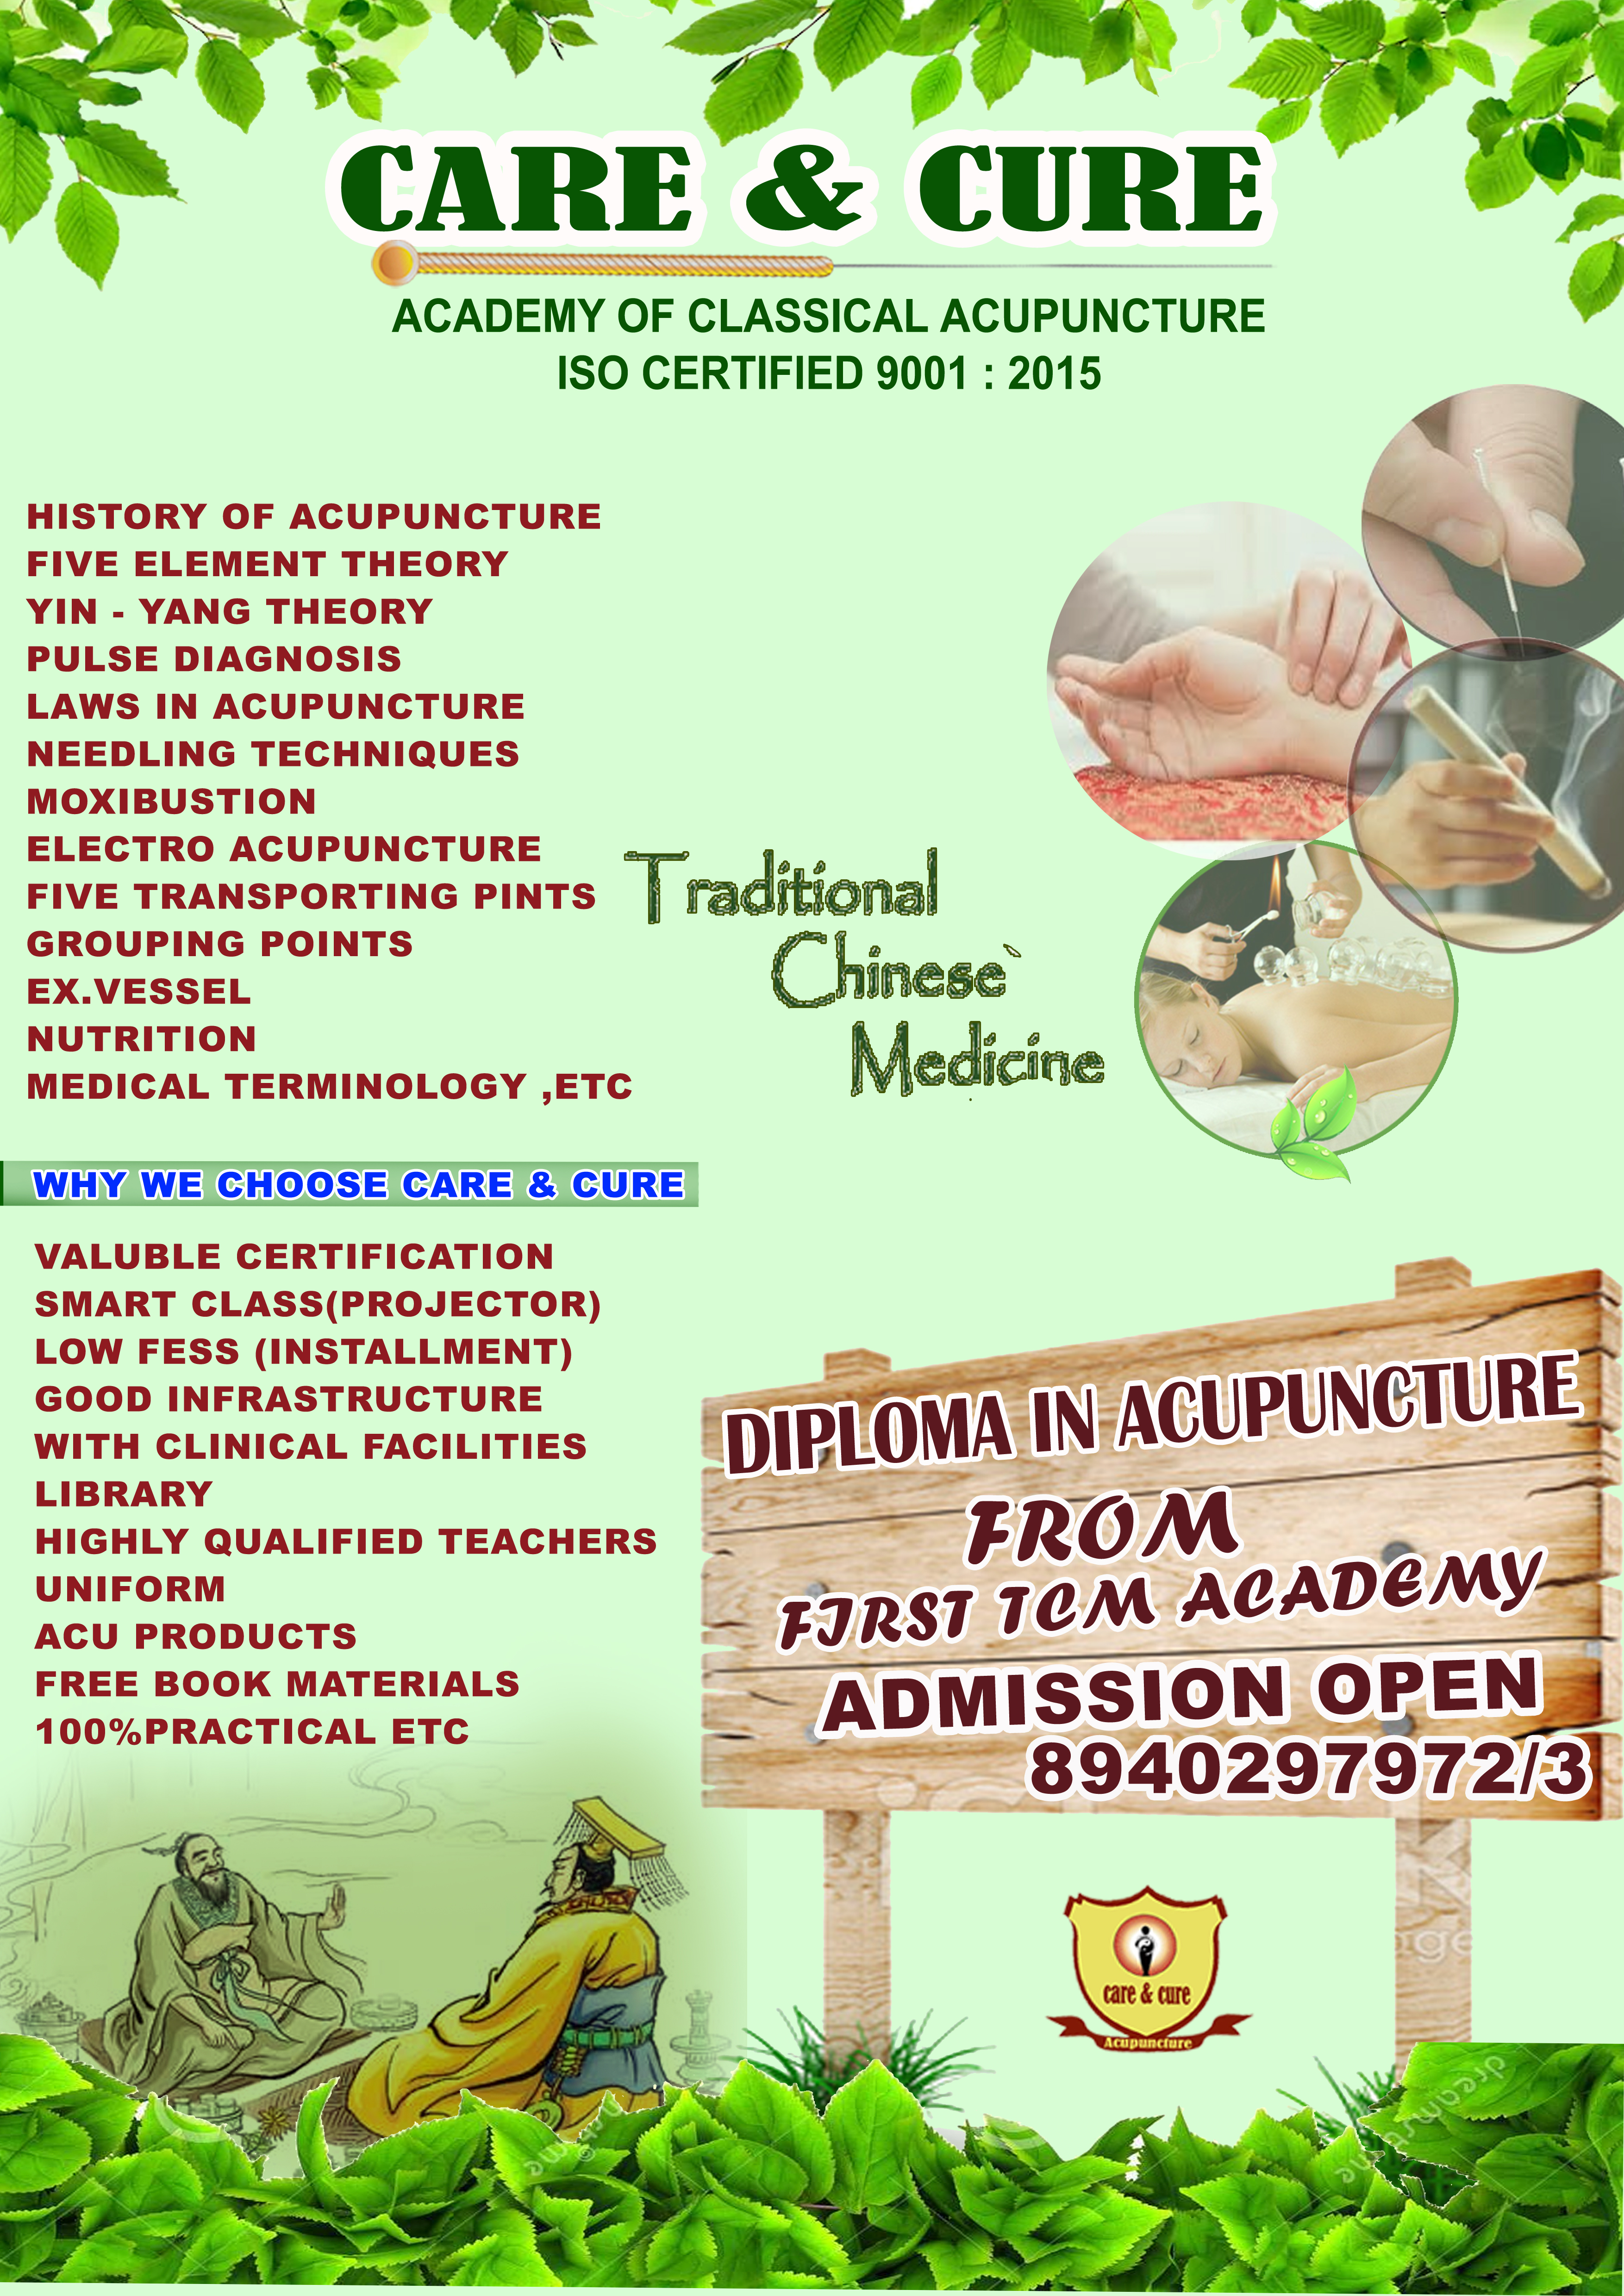 Acupuncture | Acupuncture courses | Academy of Acupuncture